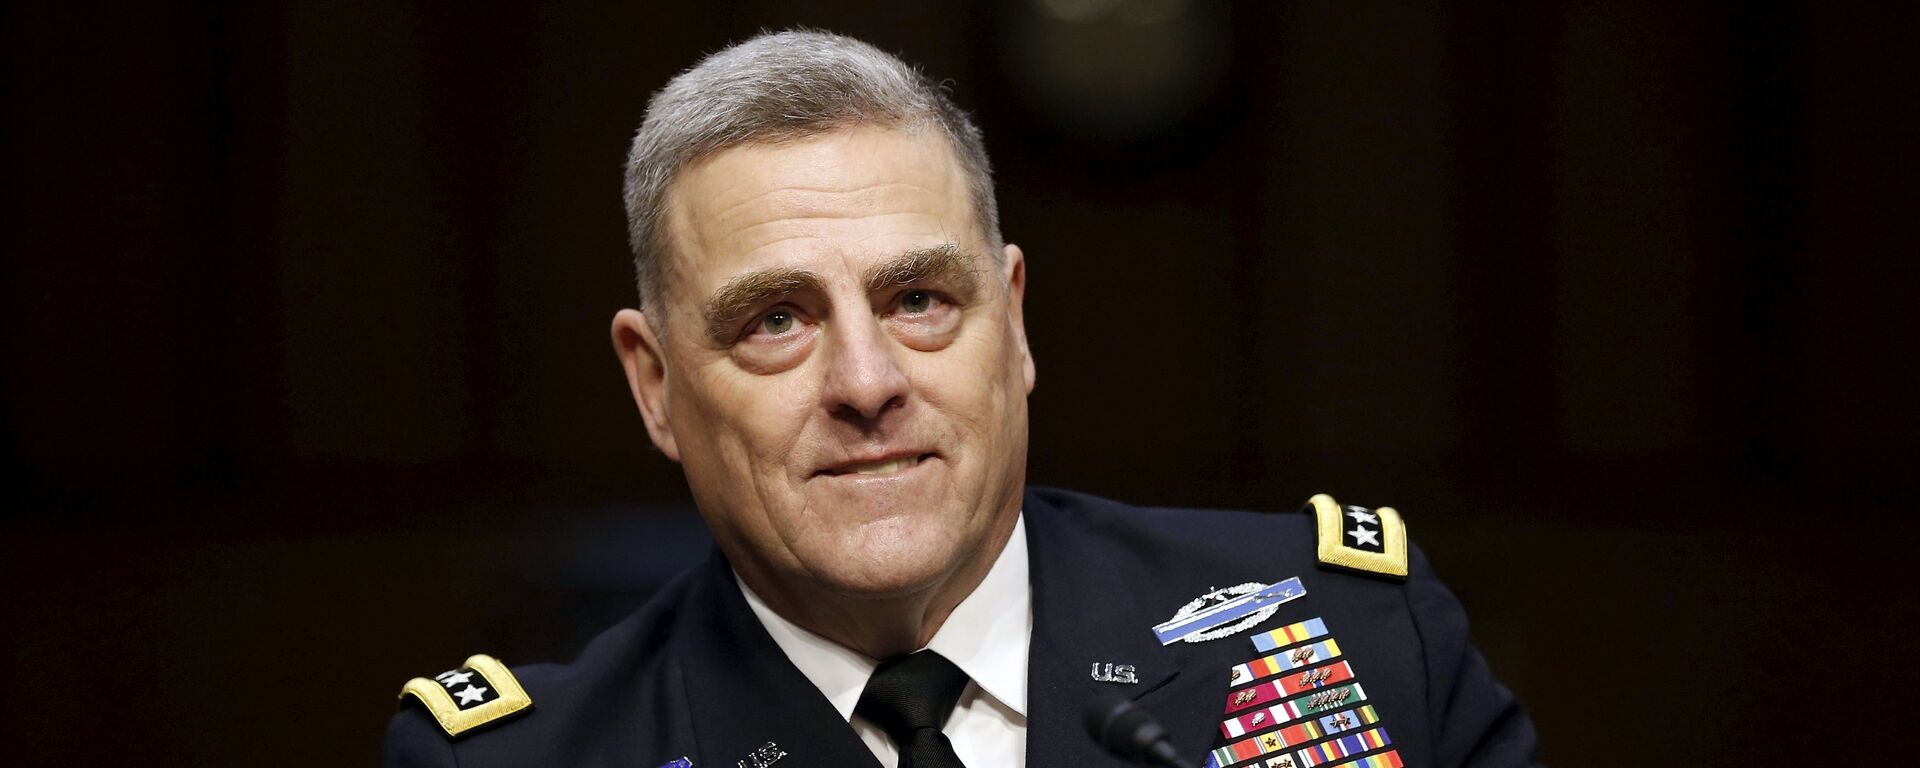 U.S. Army General Mark Milley smiles as he begins his testimony at a Senate Armed Services Committee hearing on his nomination to become the Army's chief of staff, on Capitol Hill in Washington July 21, 2015 - Sputnik International, 1920, 17.09.2021